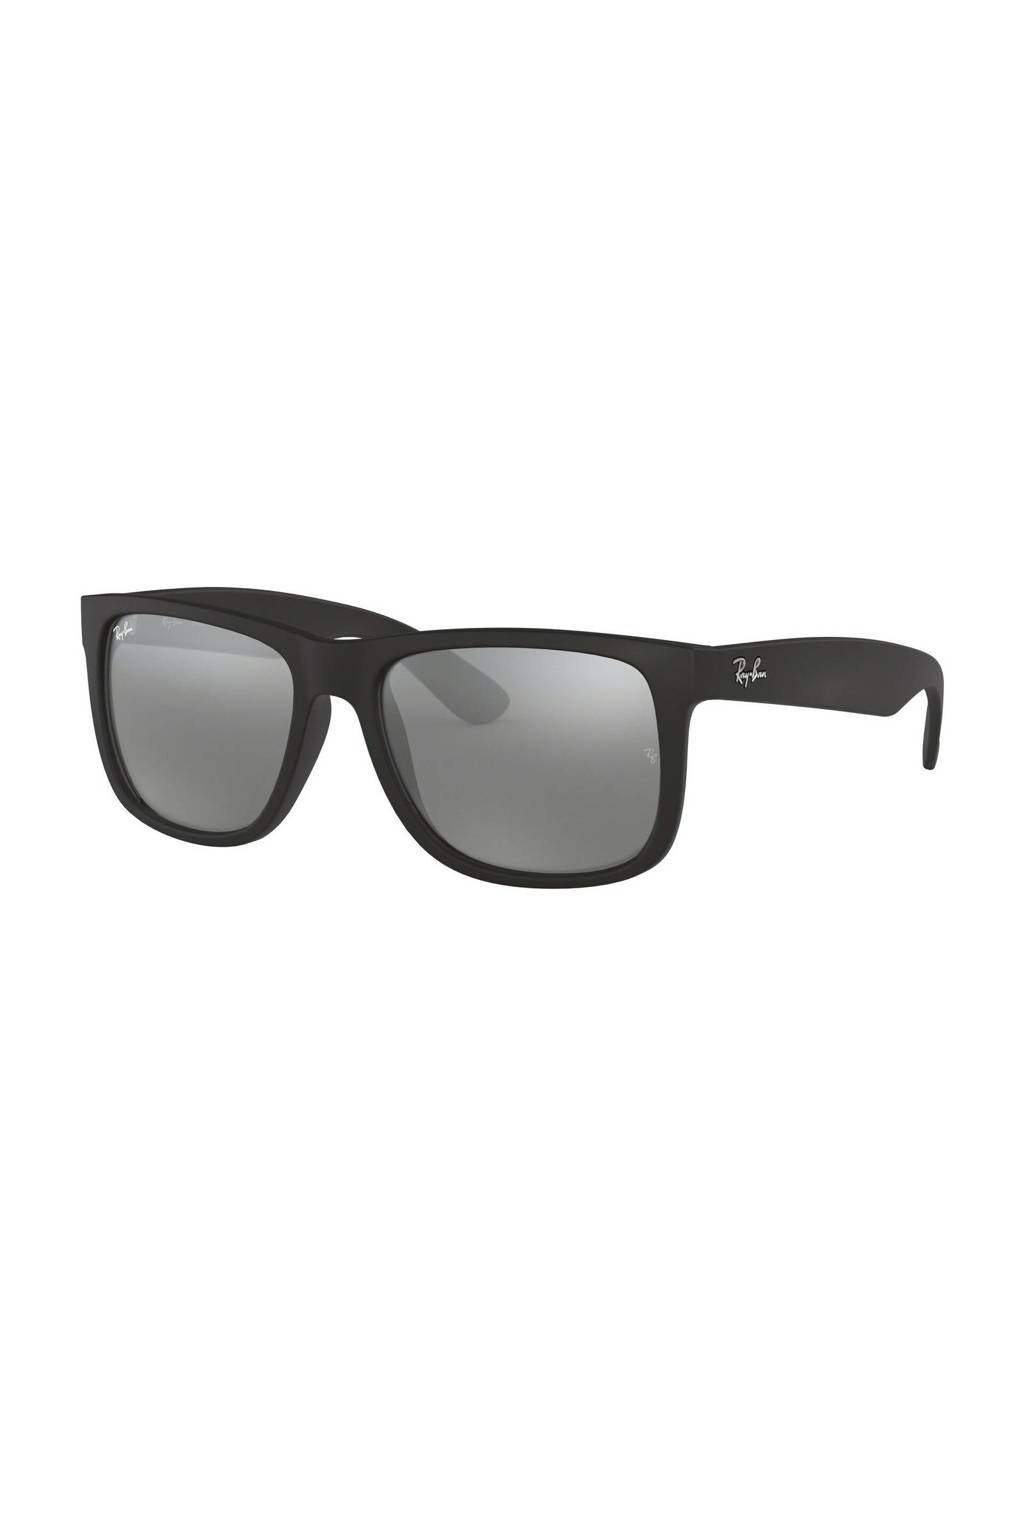 Ray-Ban zonnebril 0RB4165, Grijs/zilver